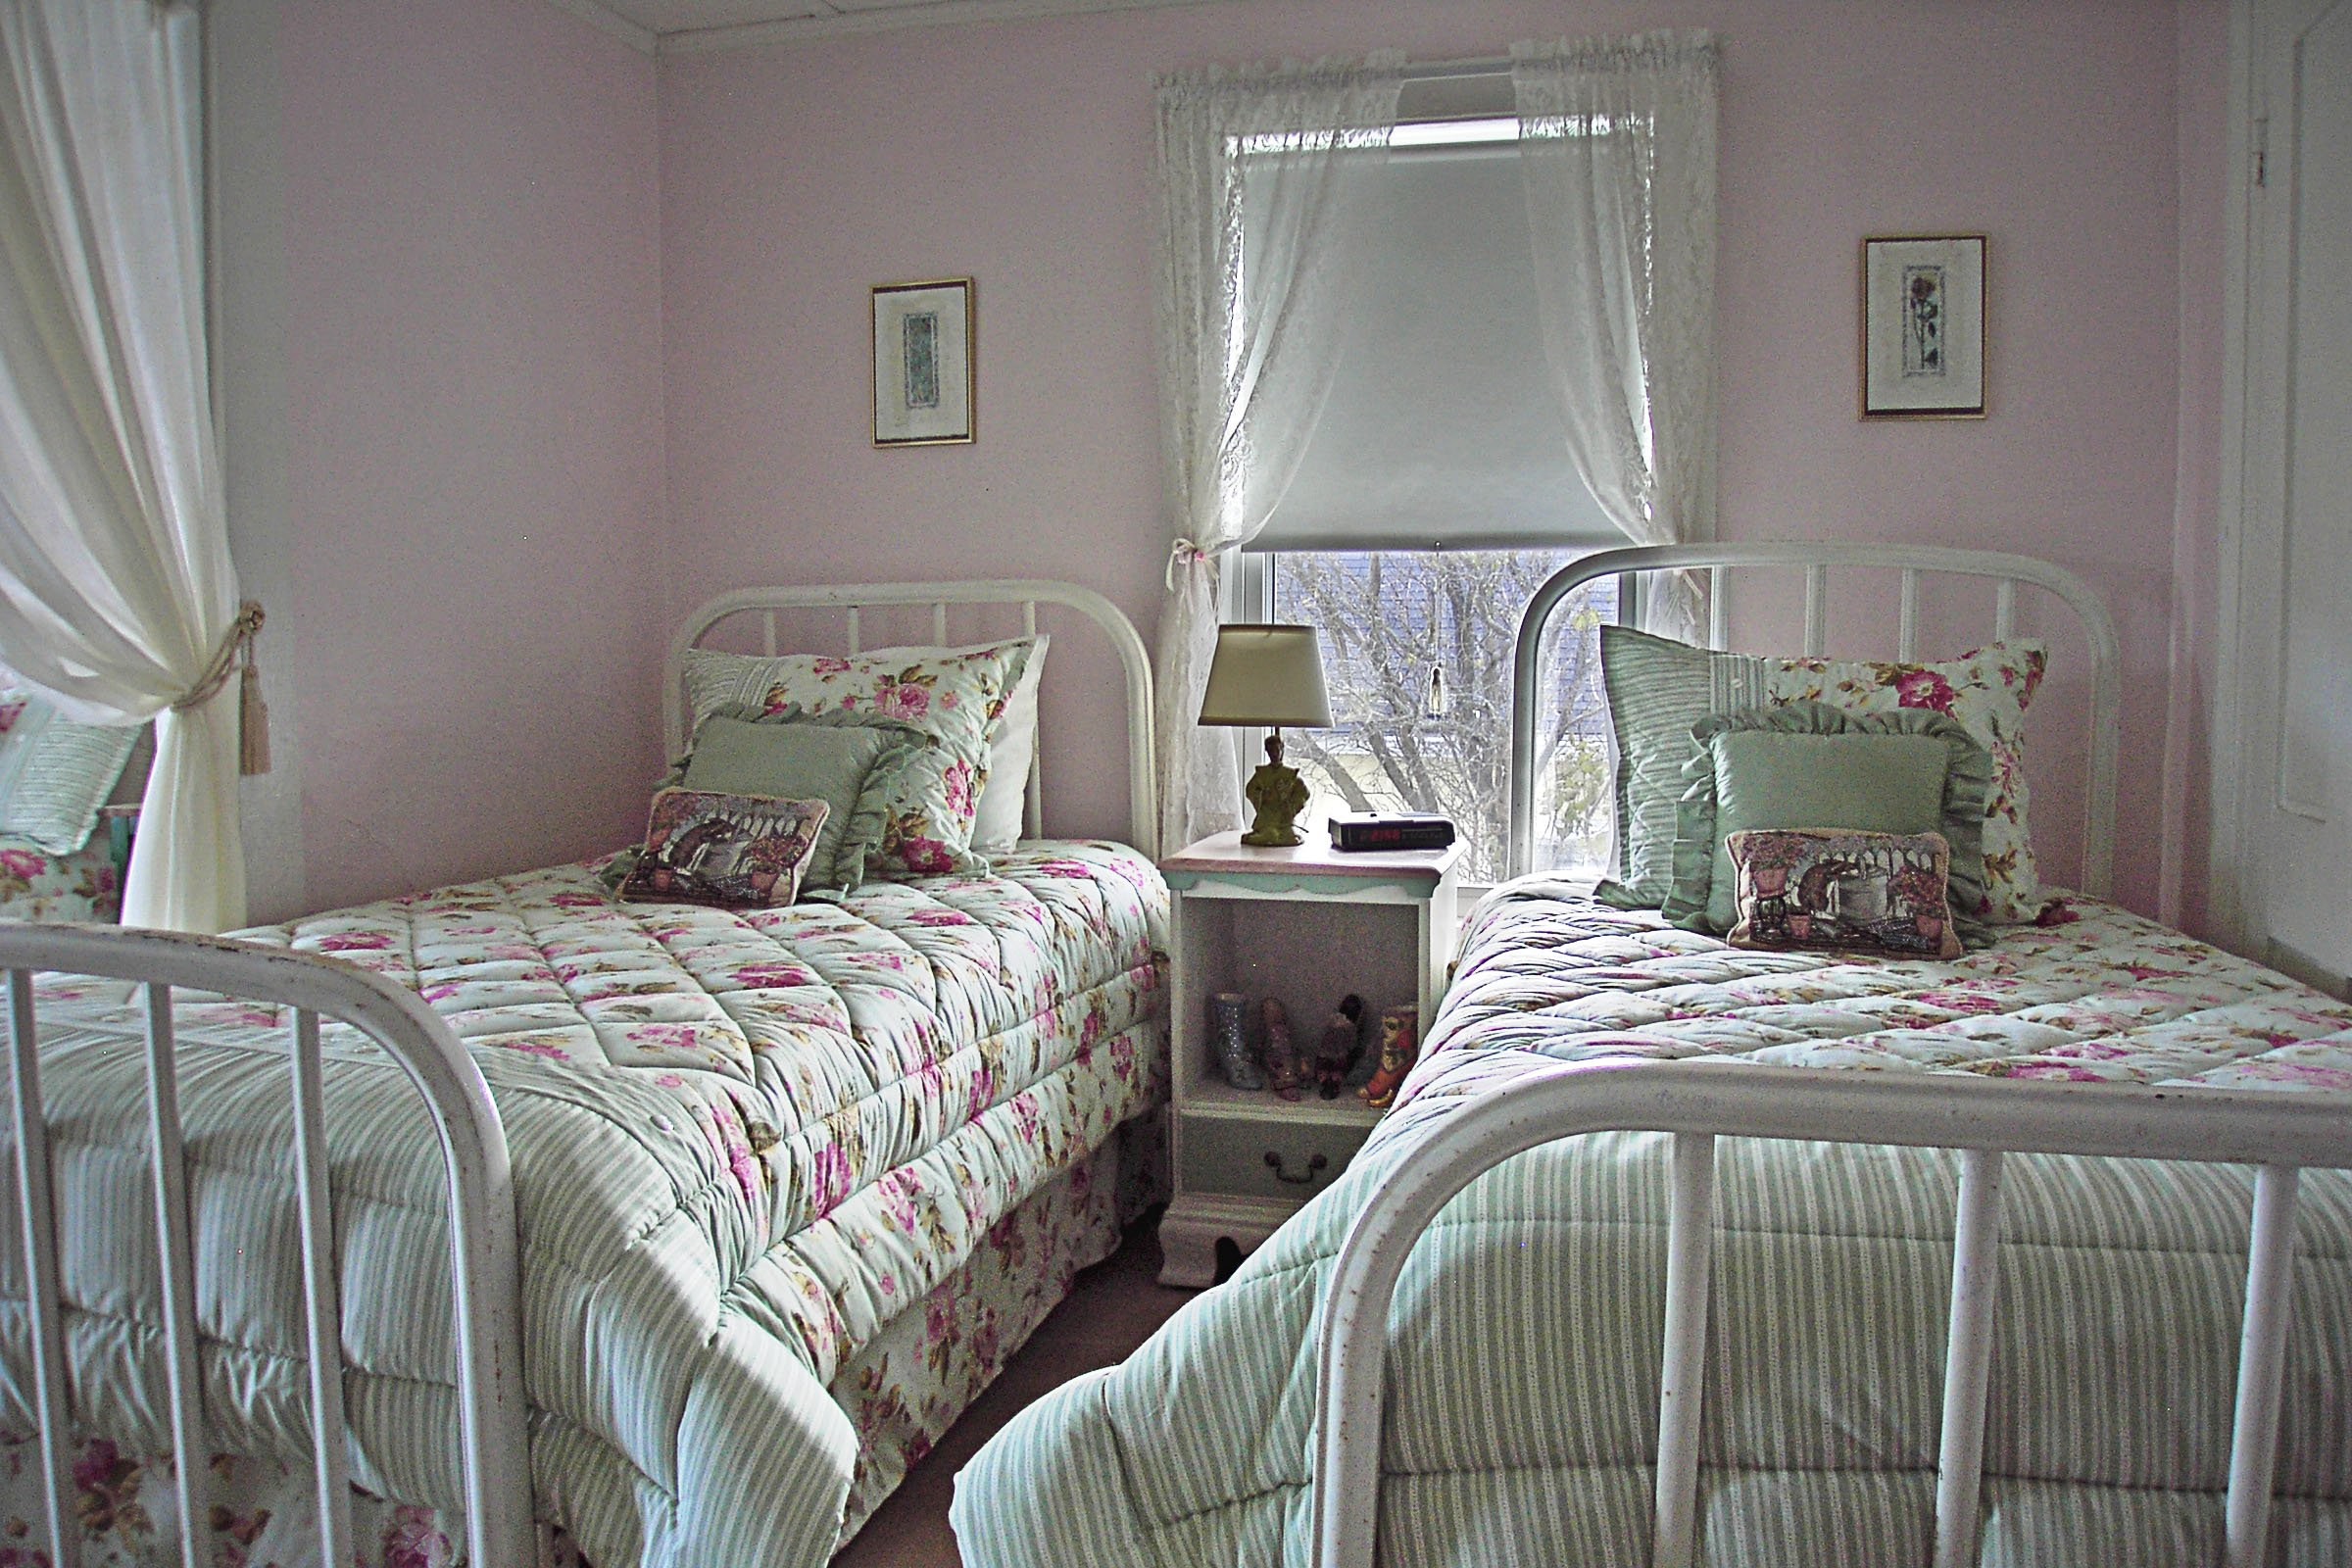 Guestroom #4, One double bed, two twin beds, ocean view